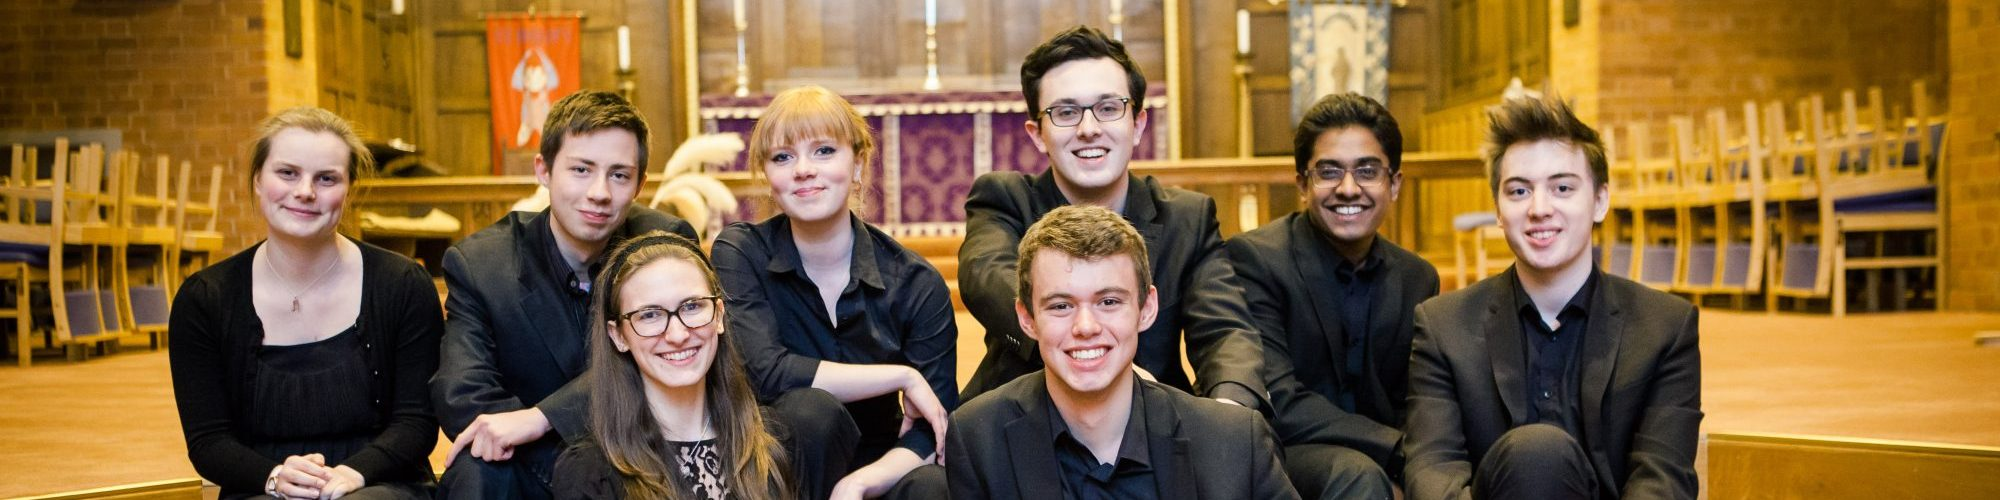 Leicestershire Chorale - Coral Scholars